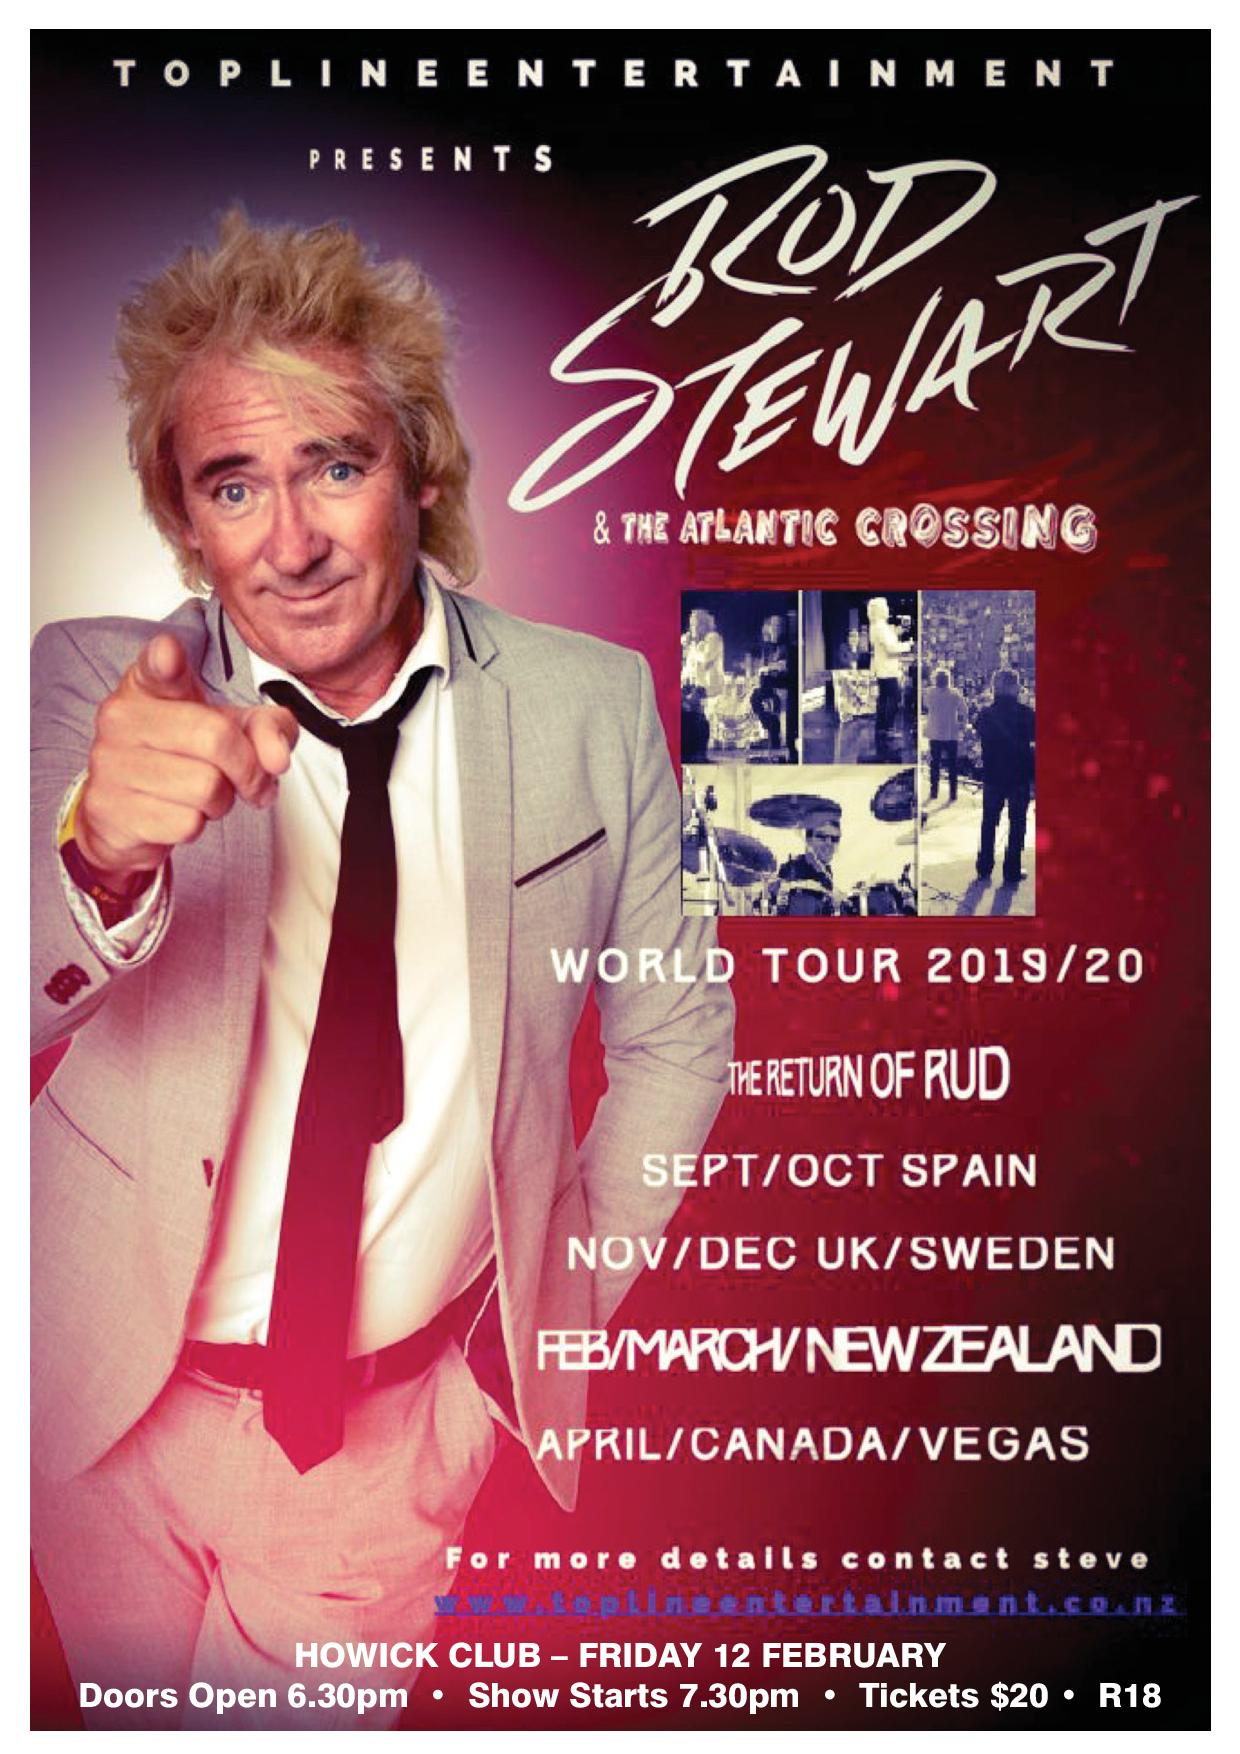 SHOW CANCELLED -   RUD STEWART & The Atlantic Crossing